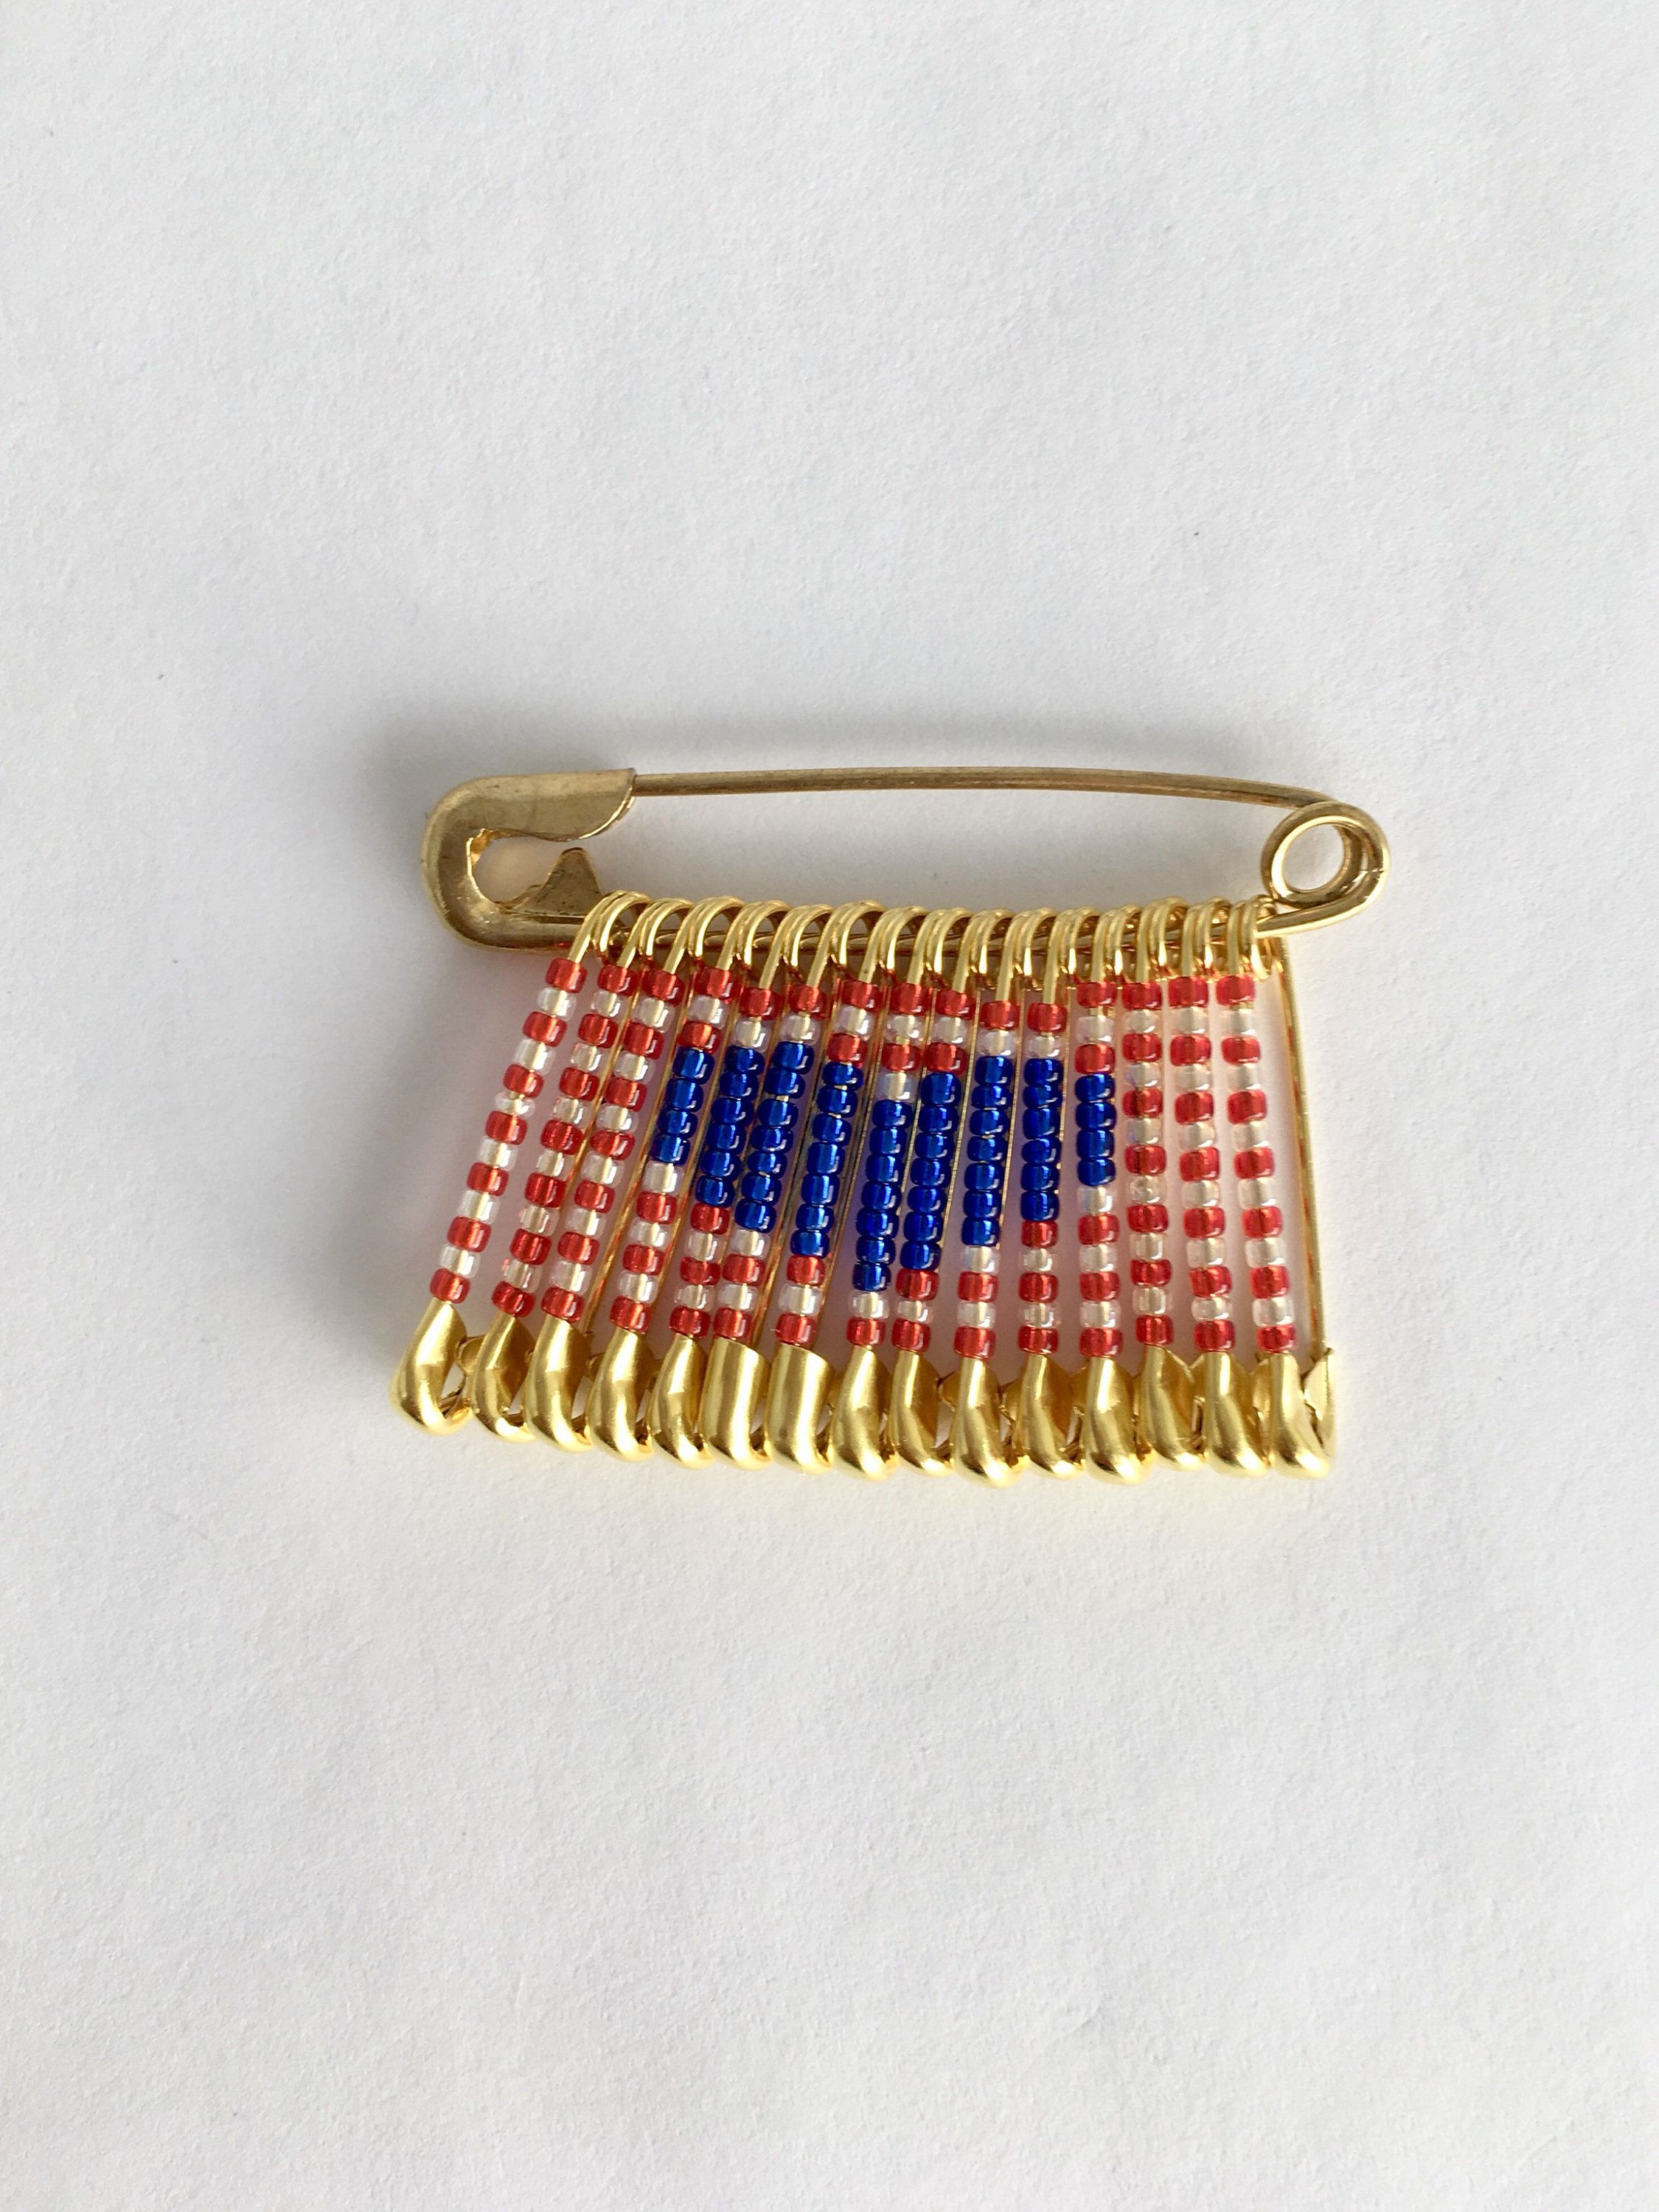 US Heart Pin Handmade Beaded Flag Safety Brooch Lapel Birthday Gift Veterans Day For Her By FlagPinsbyAnnette On Etsy